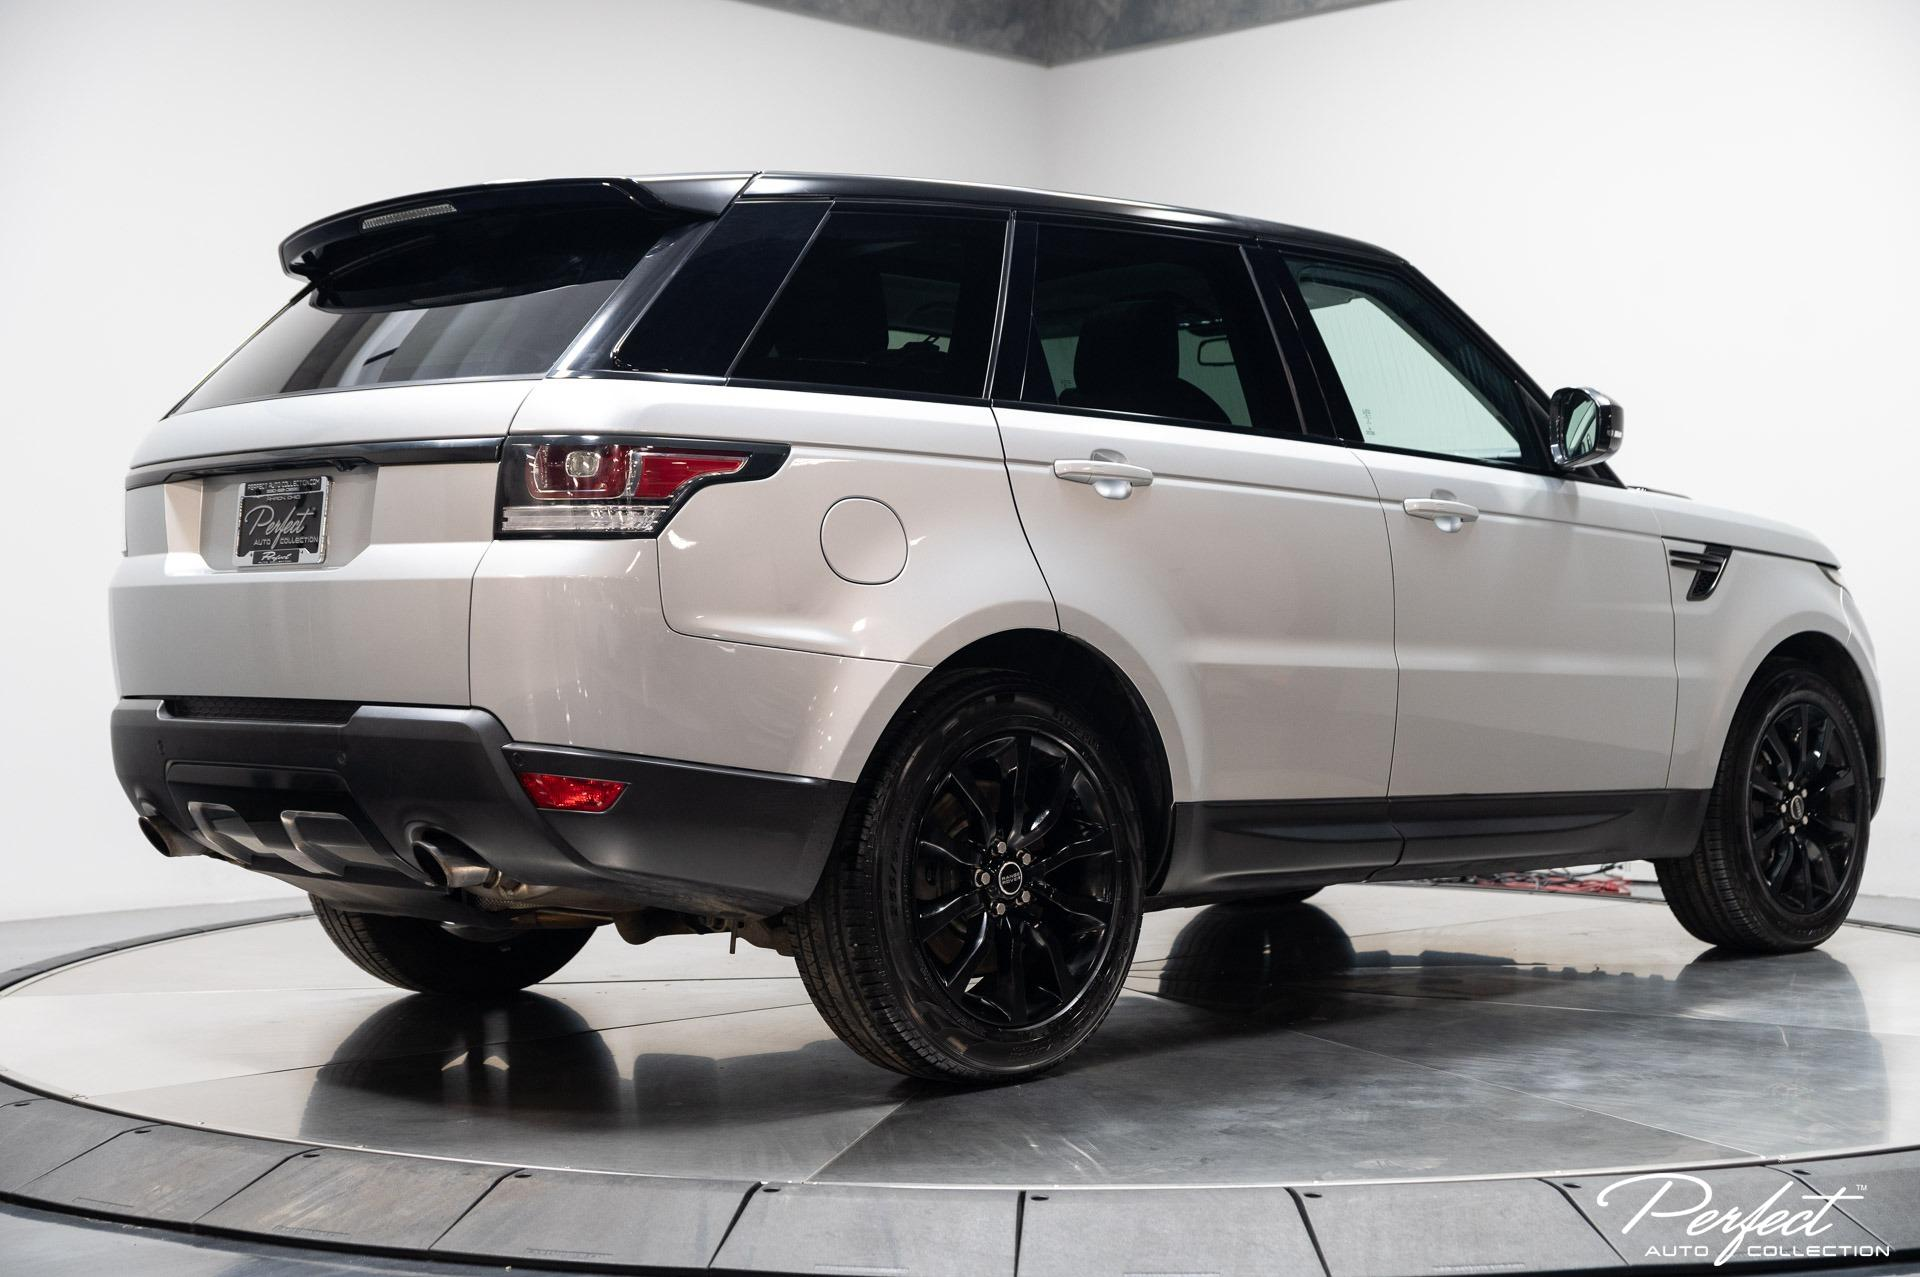 Used 2014 Land Rover Range Rover Sport Supercharged for sale Sold at Perfect Auto Collection in Akron OH 44310 3